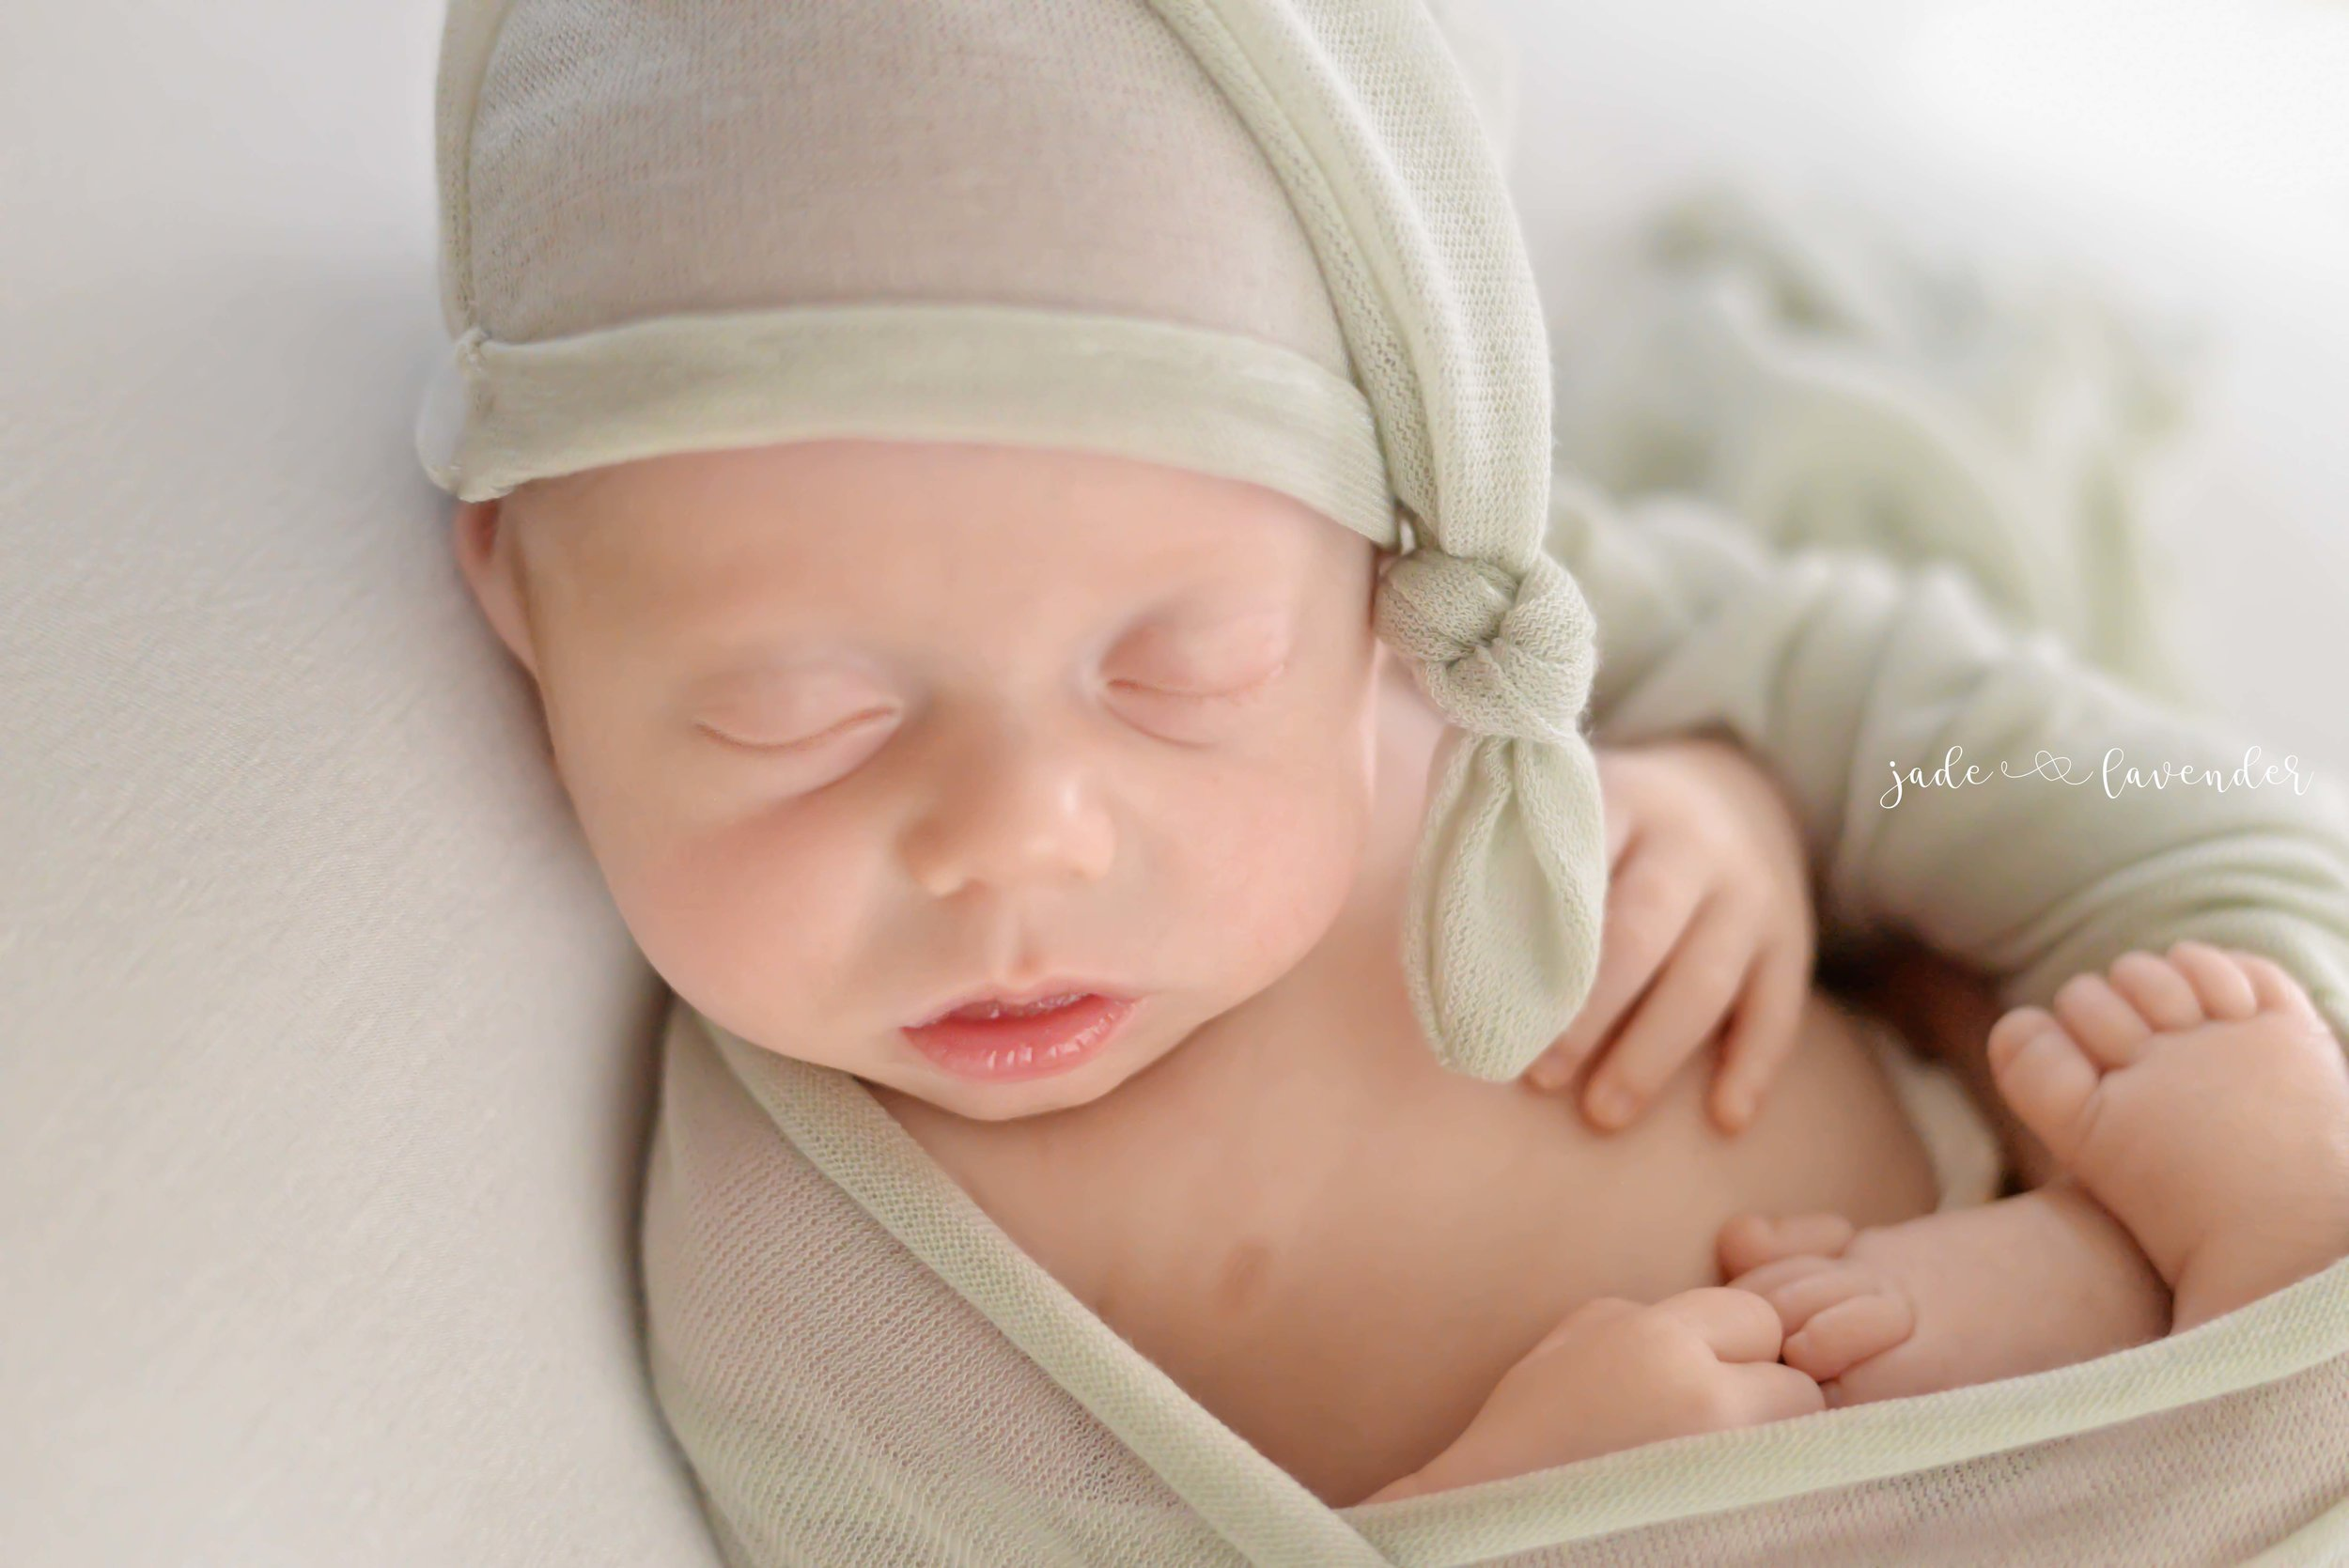 cute-baby-photos-newborn-pictures-boy-spokane-washington.jpg